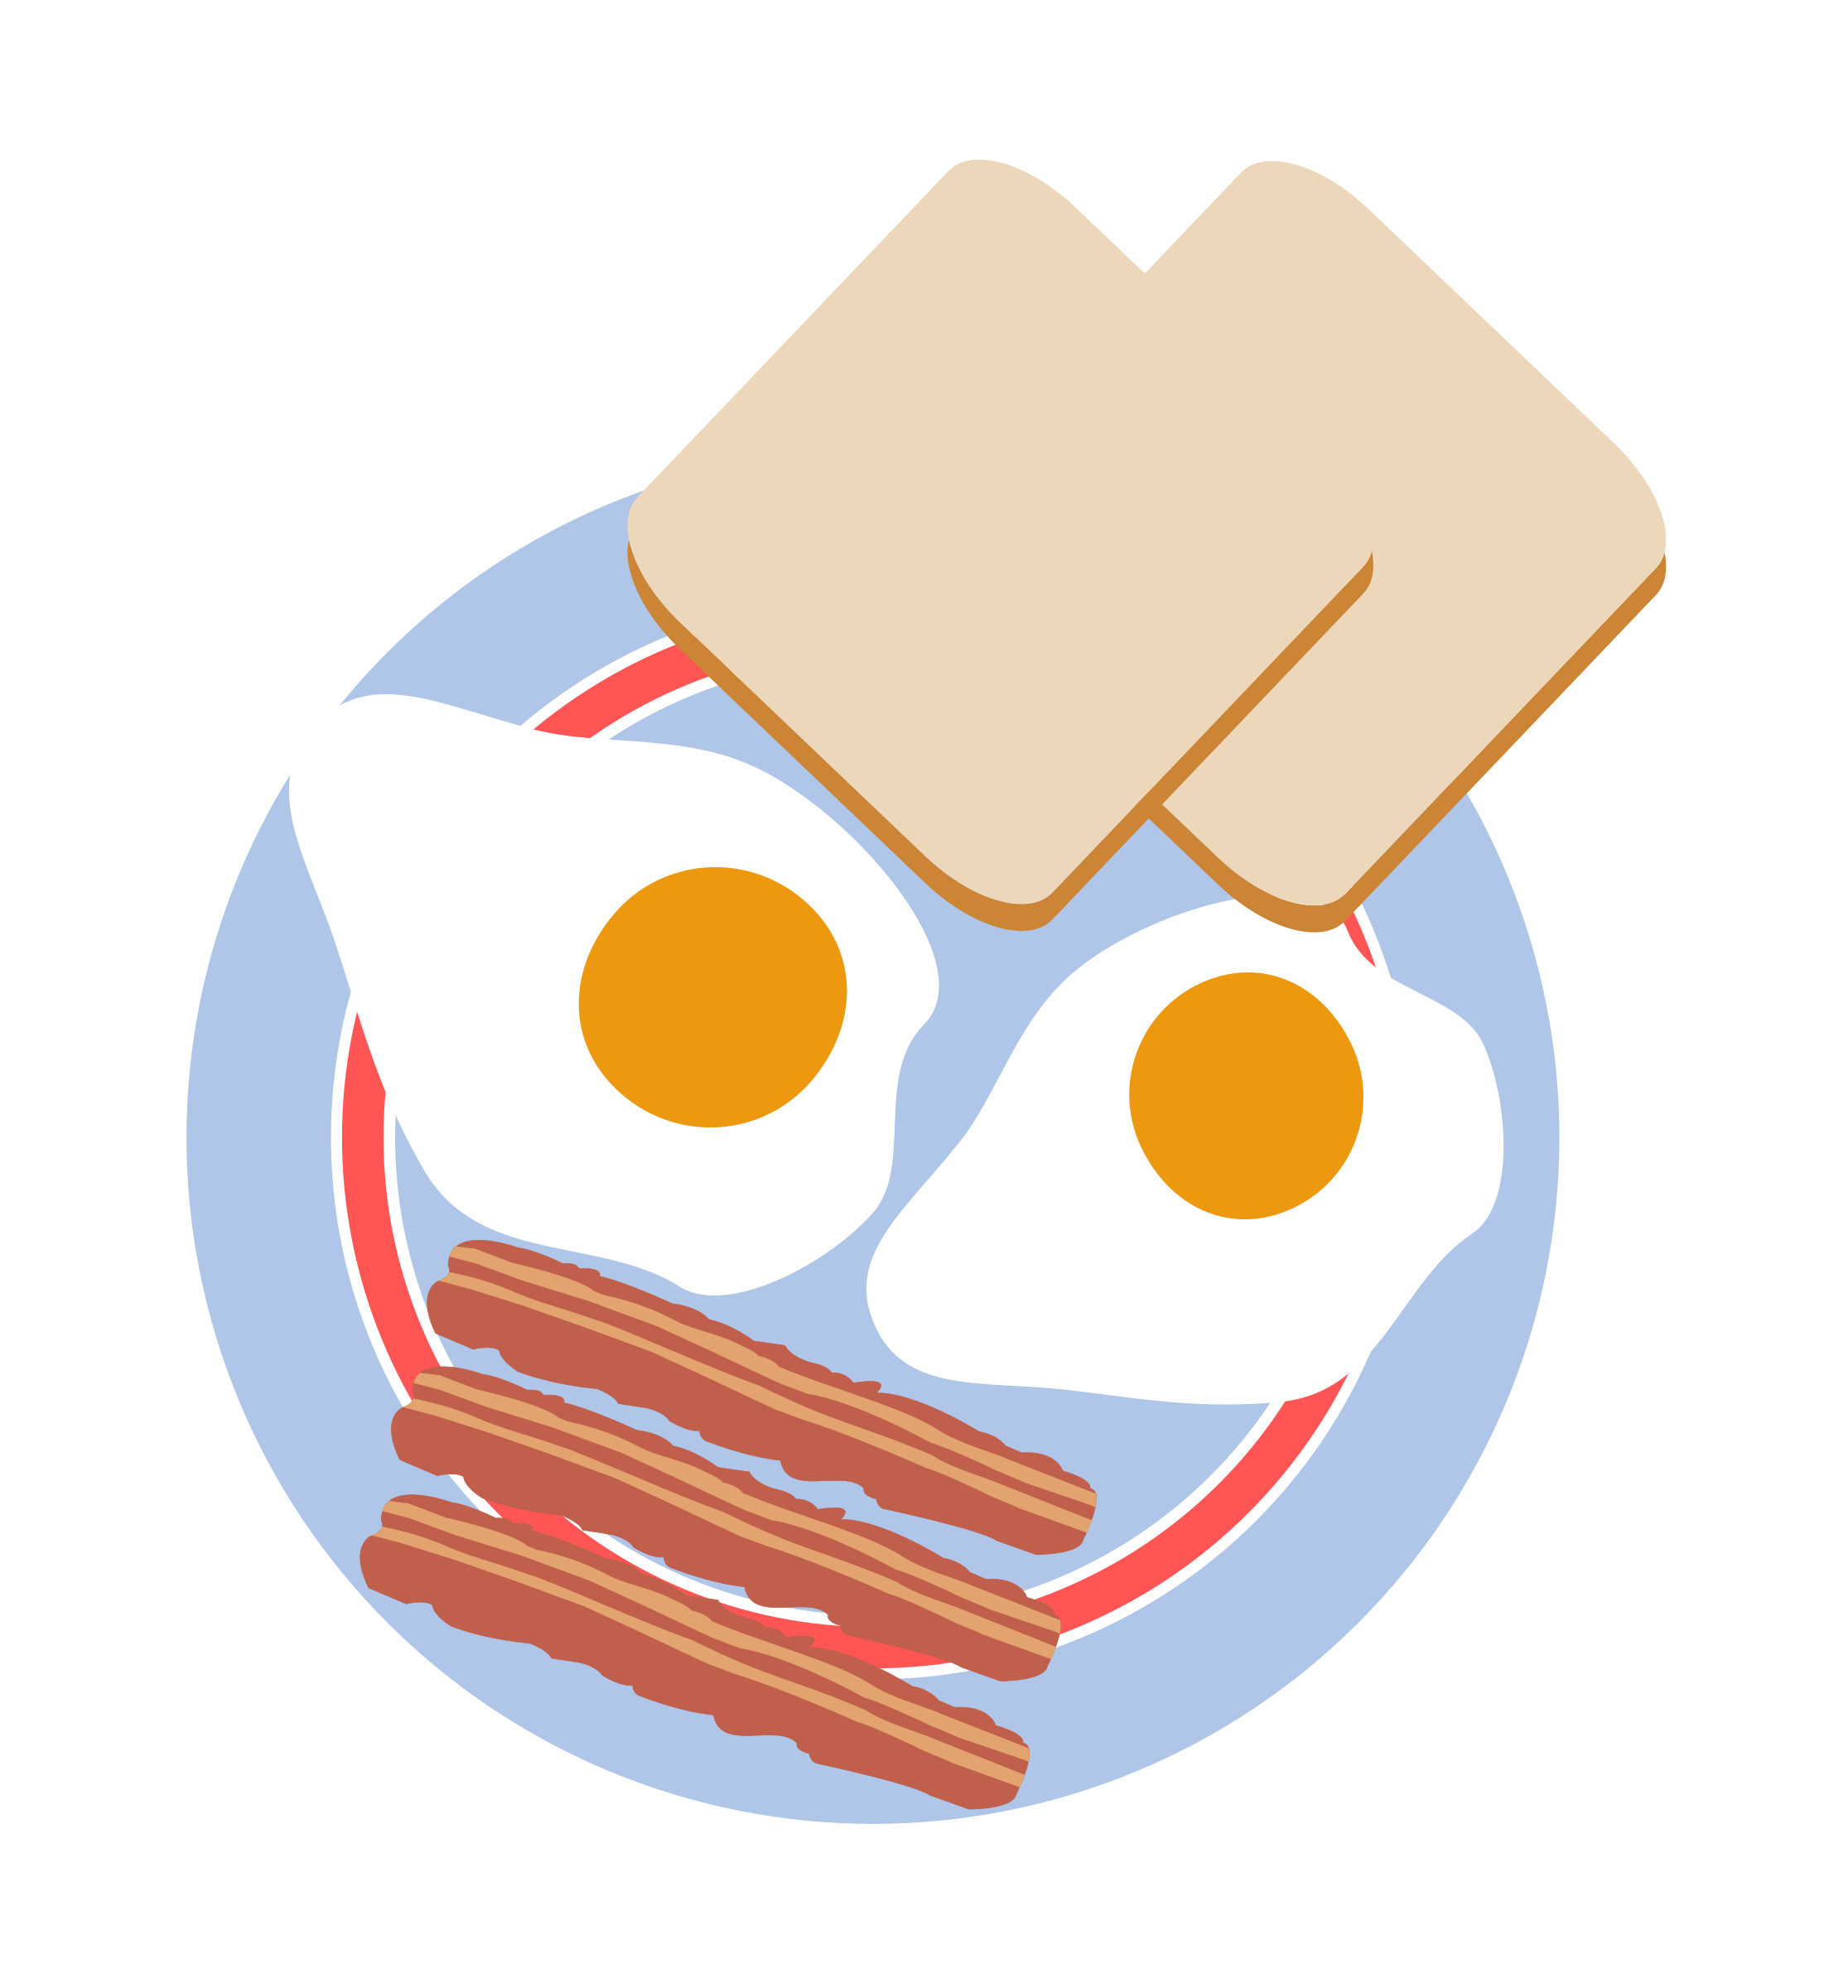 Bull's eye eggs with toast and bacon by agomjo